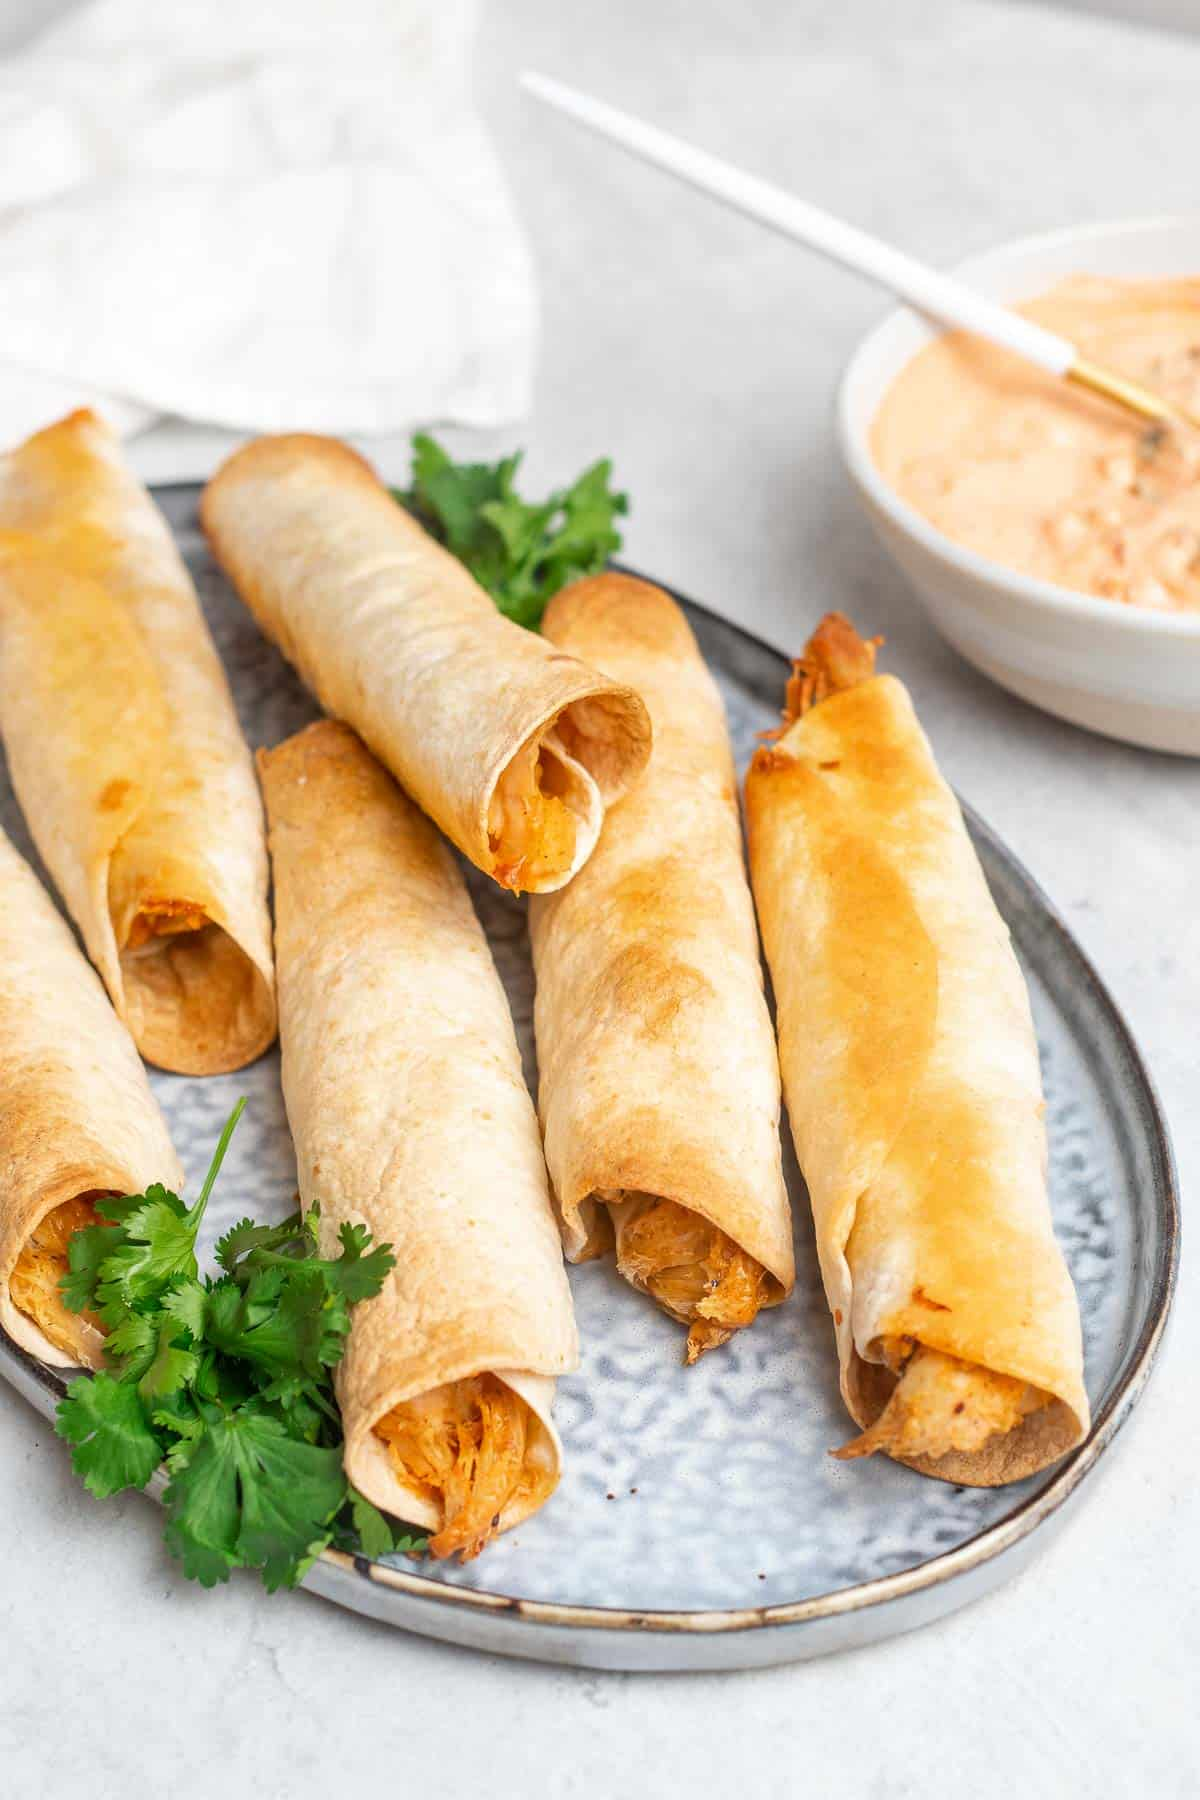 Six baked chicken taquitos on a plate with fresh cilantro next to a white ramekin of sauce